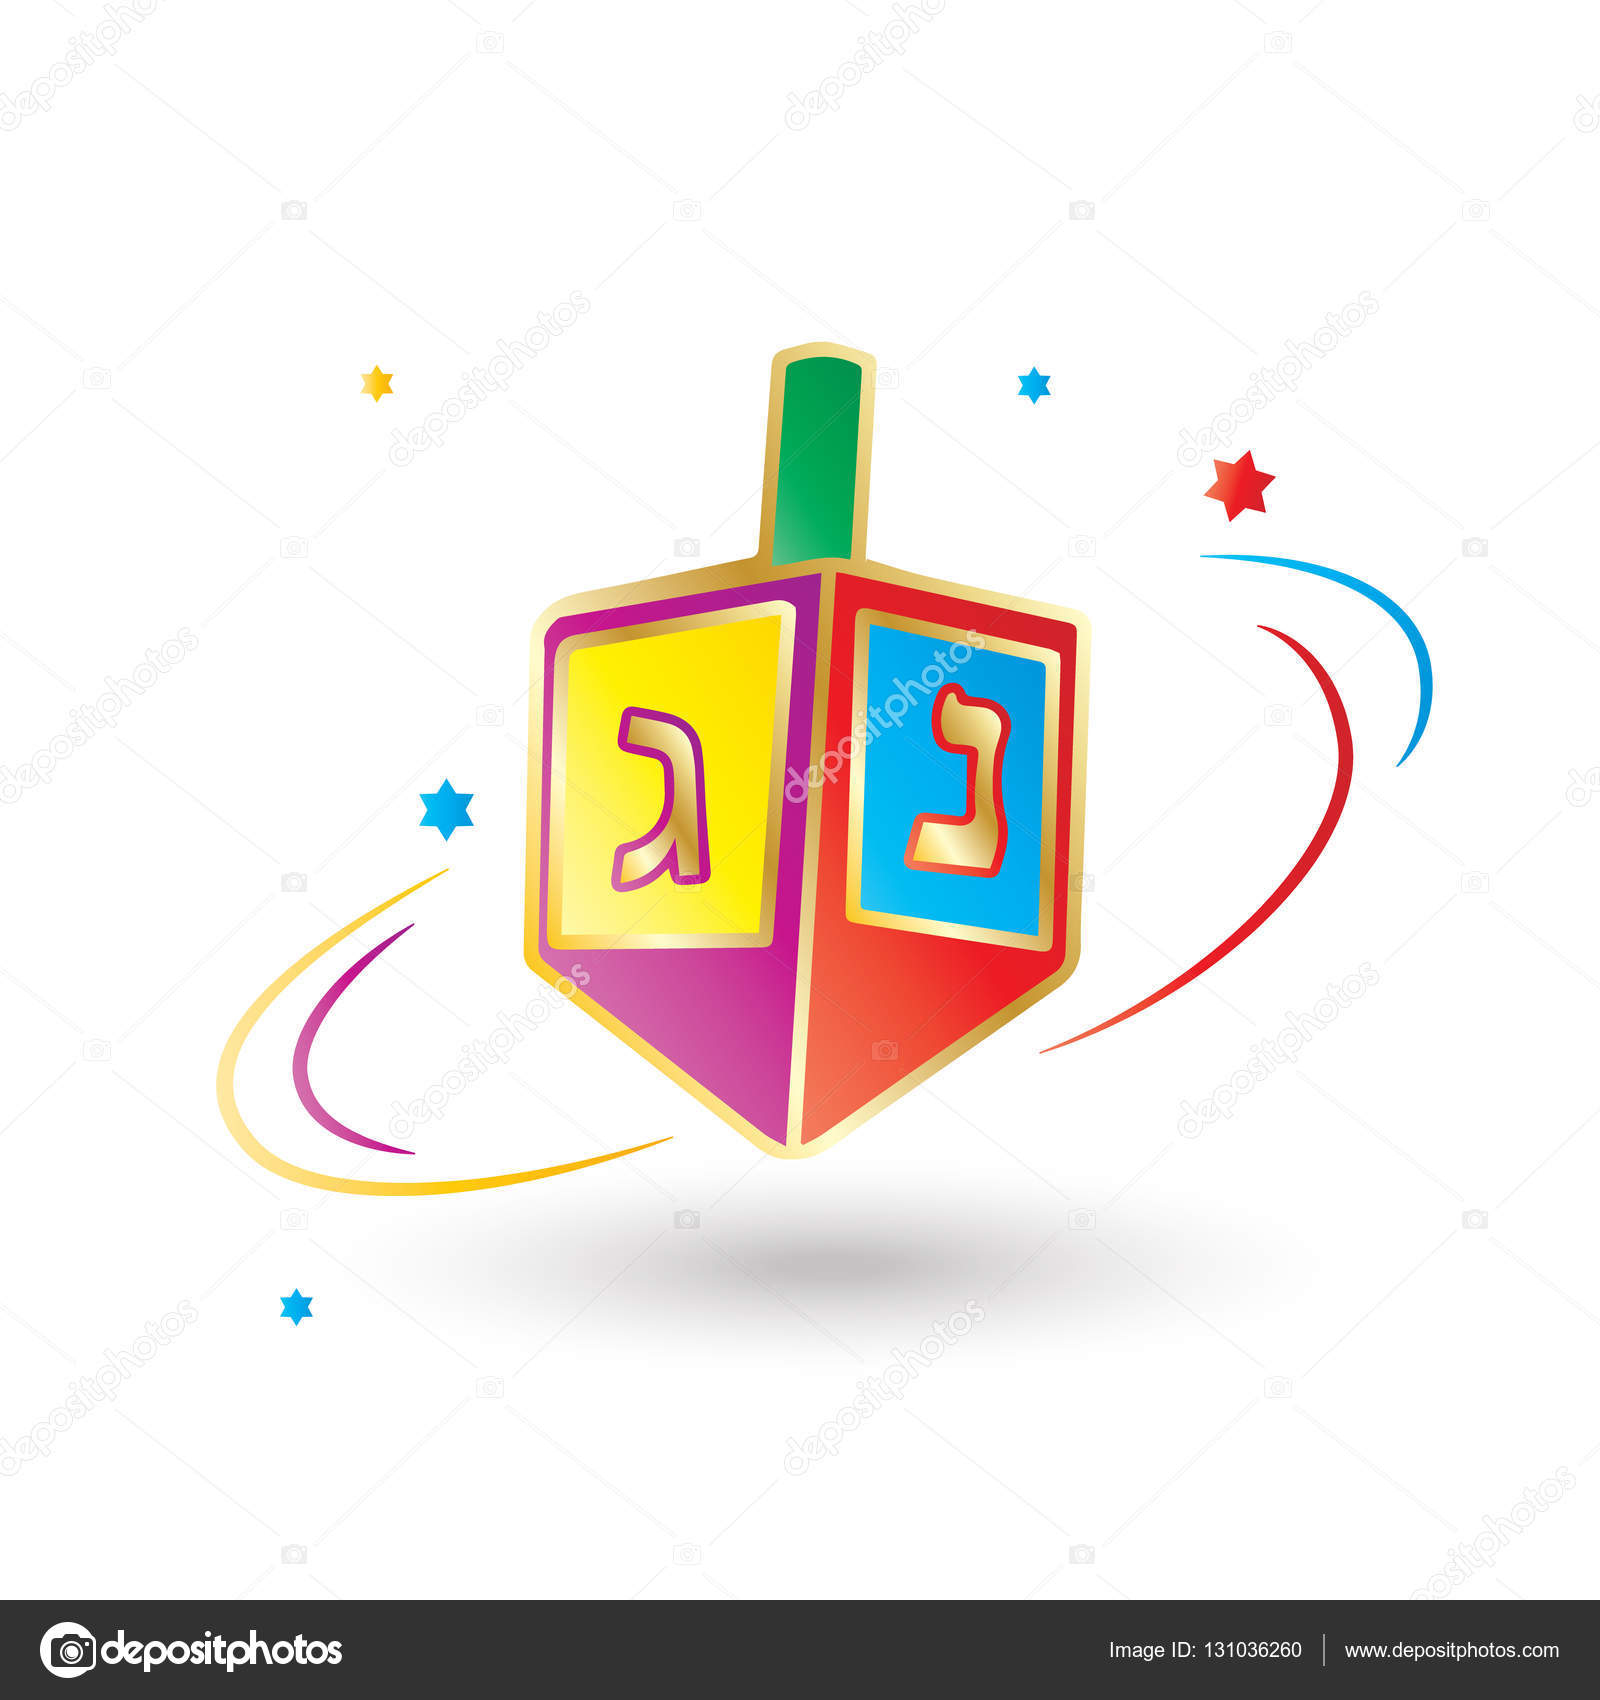 Hanukkah festival of lights spinning top hanukkah spinning top hanukkah festival of lights spinning top hanukkah spinning top icon hanukkah dreidel a small four sided spinning top with a hebrew letter on each side jeuxipadfo Images